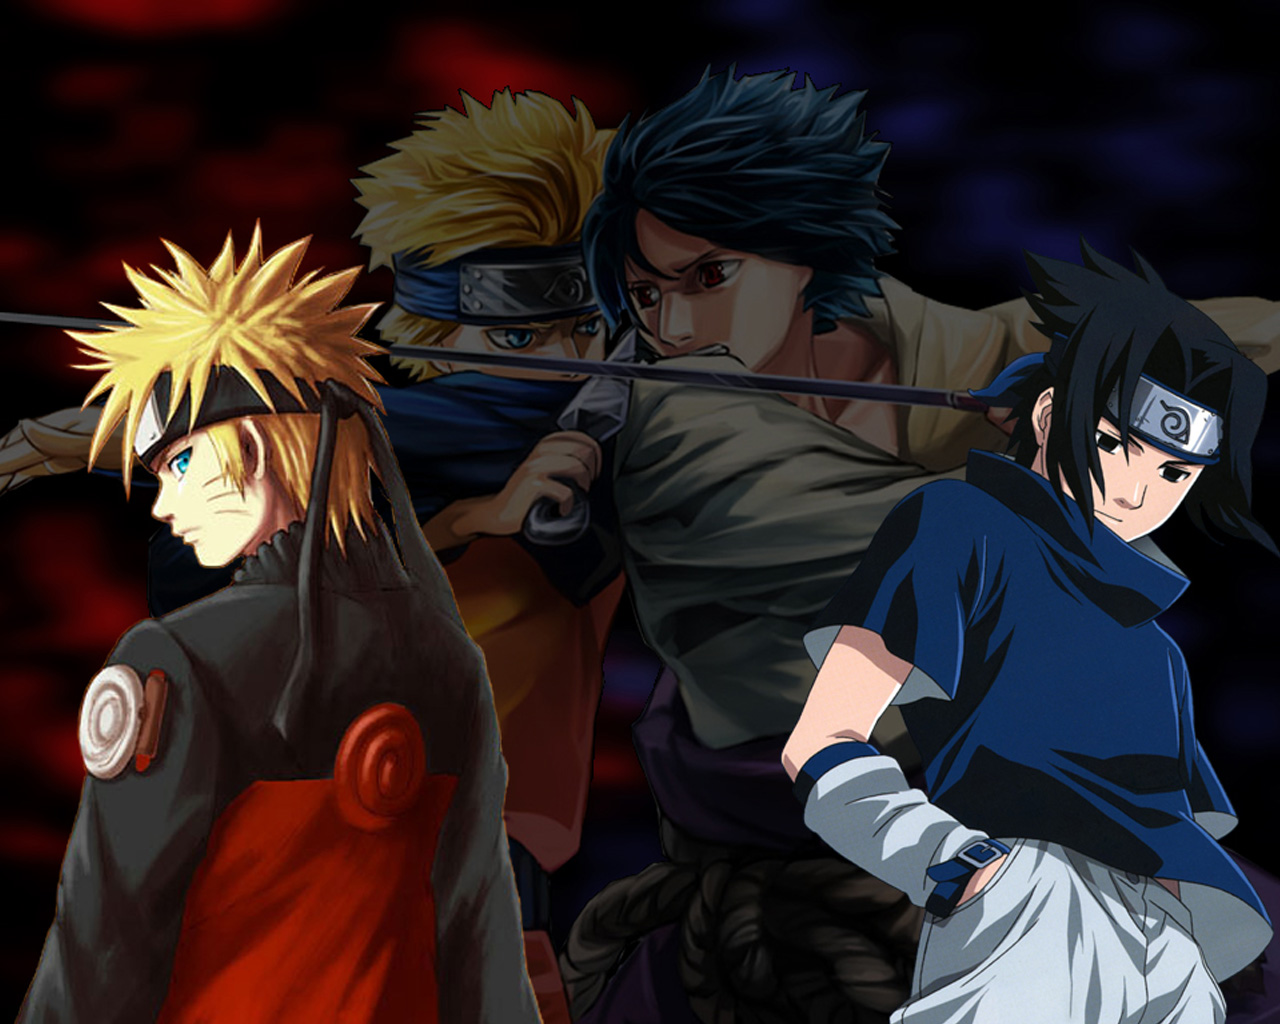 You are viewing the Groups wallpaper named Naruto vs Sasuke It has 1280x1024